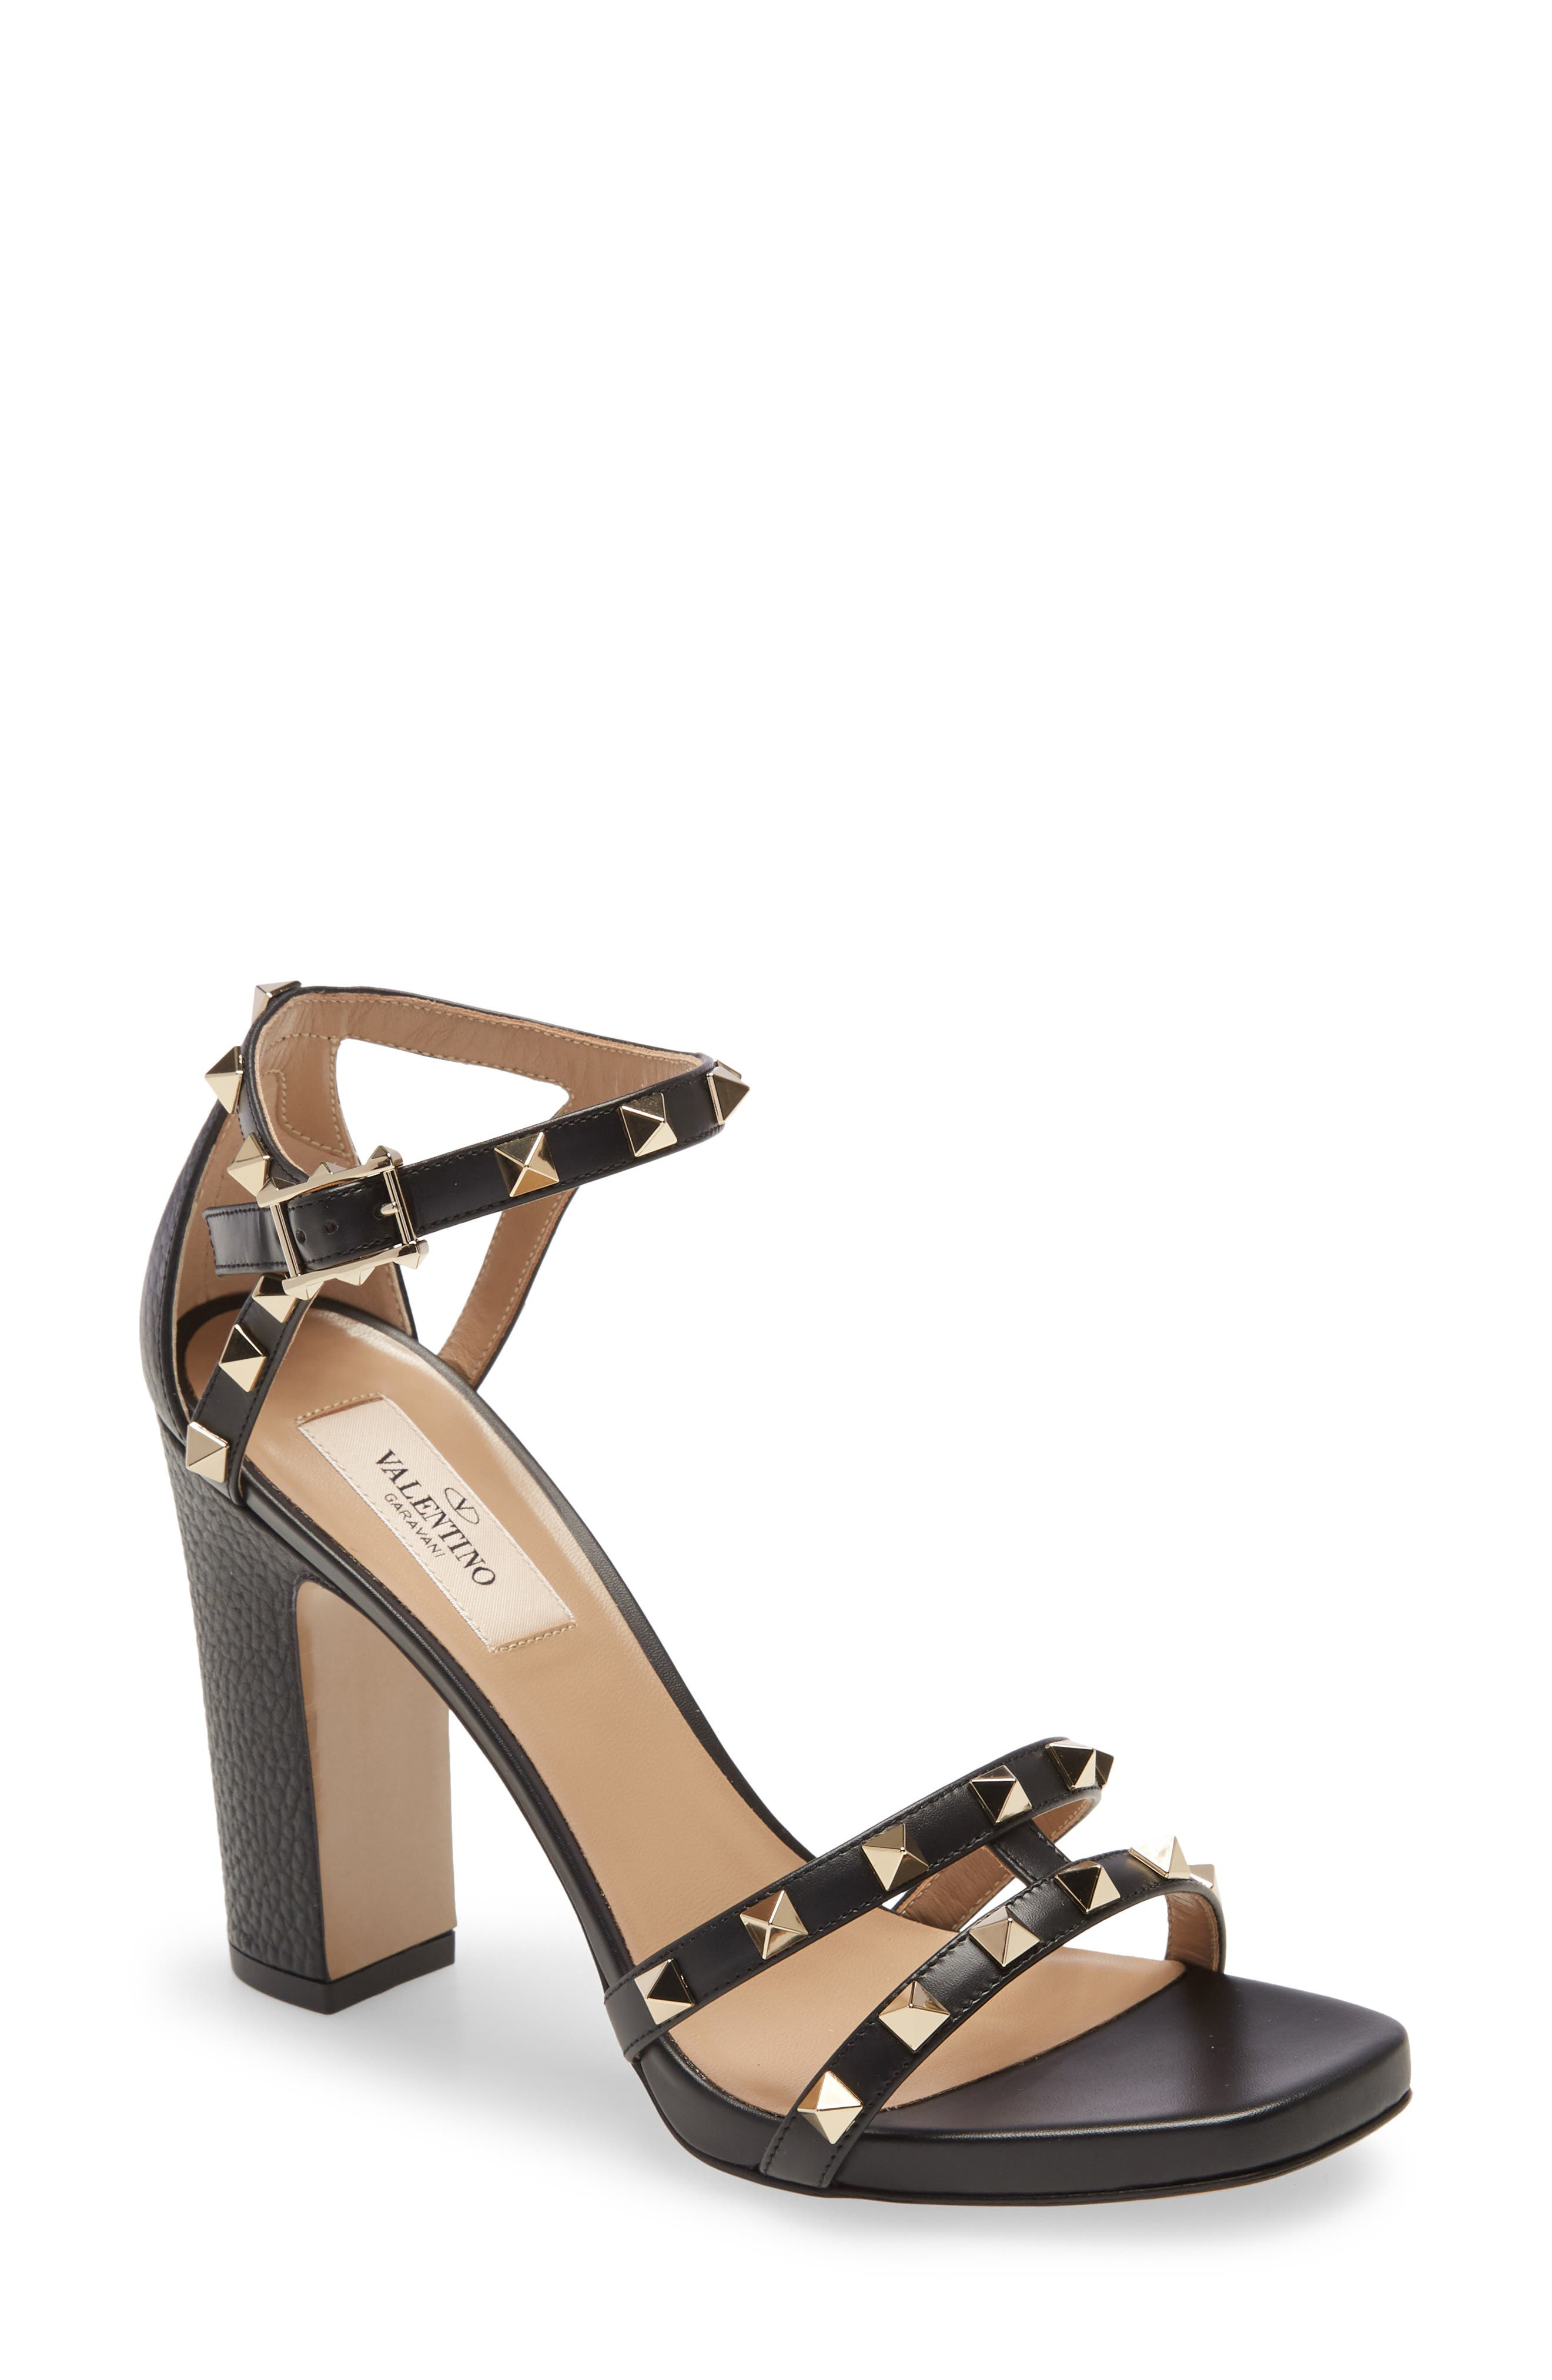 Gleaming pyramid studs punctuate the strappy geometry of a chic Italian sandal elevated by a wrapped block heel. Style Name: Valentino Rockstud Strappy Block Heel Sandal (Women). Style Number: 5970707. Available in stores.